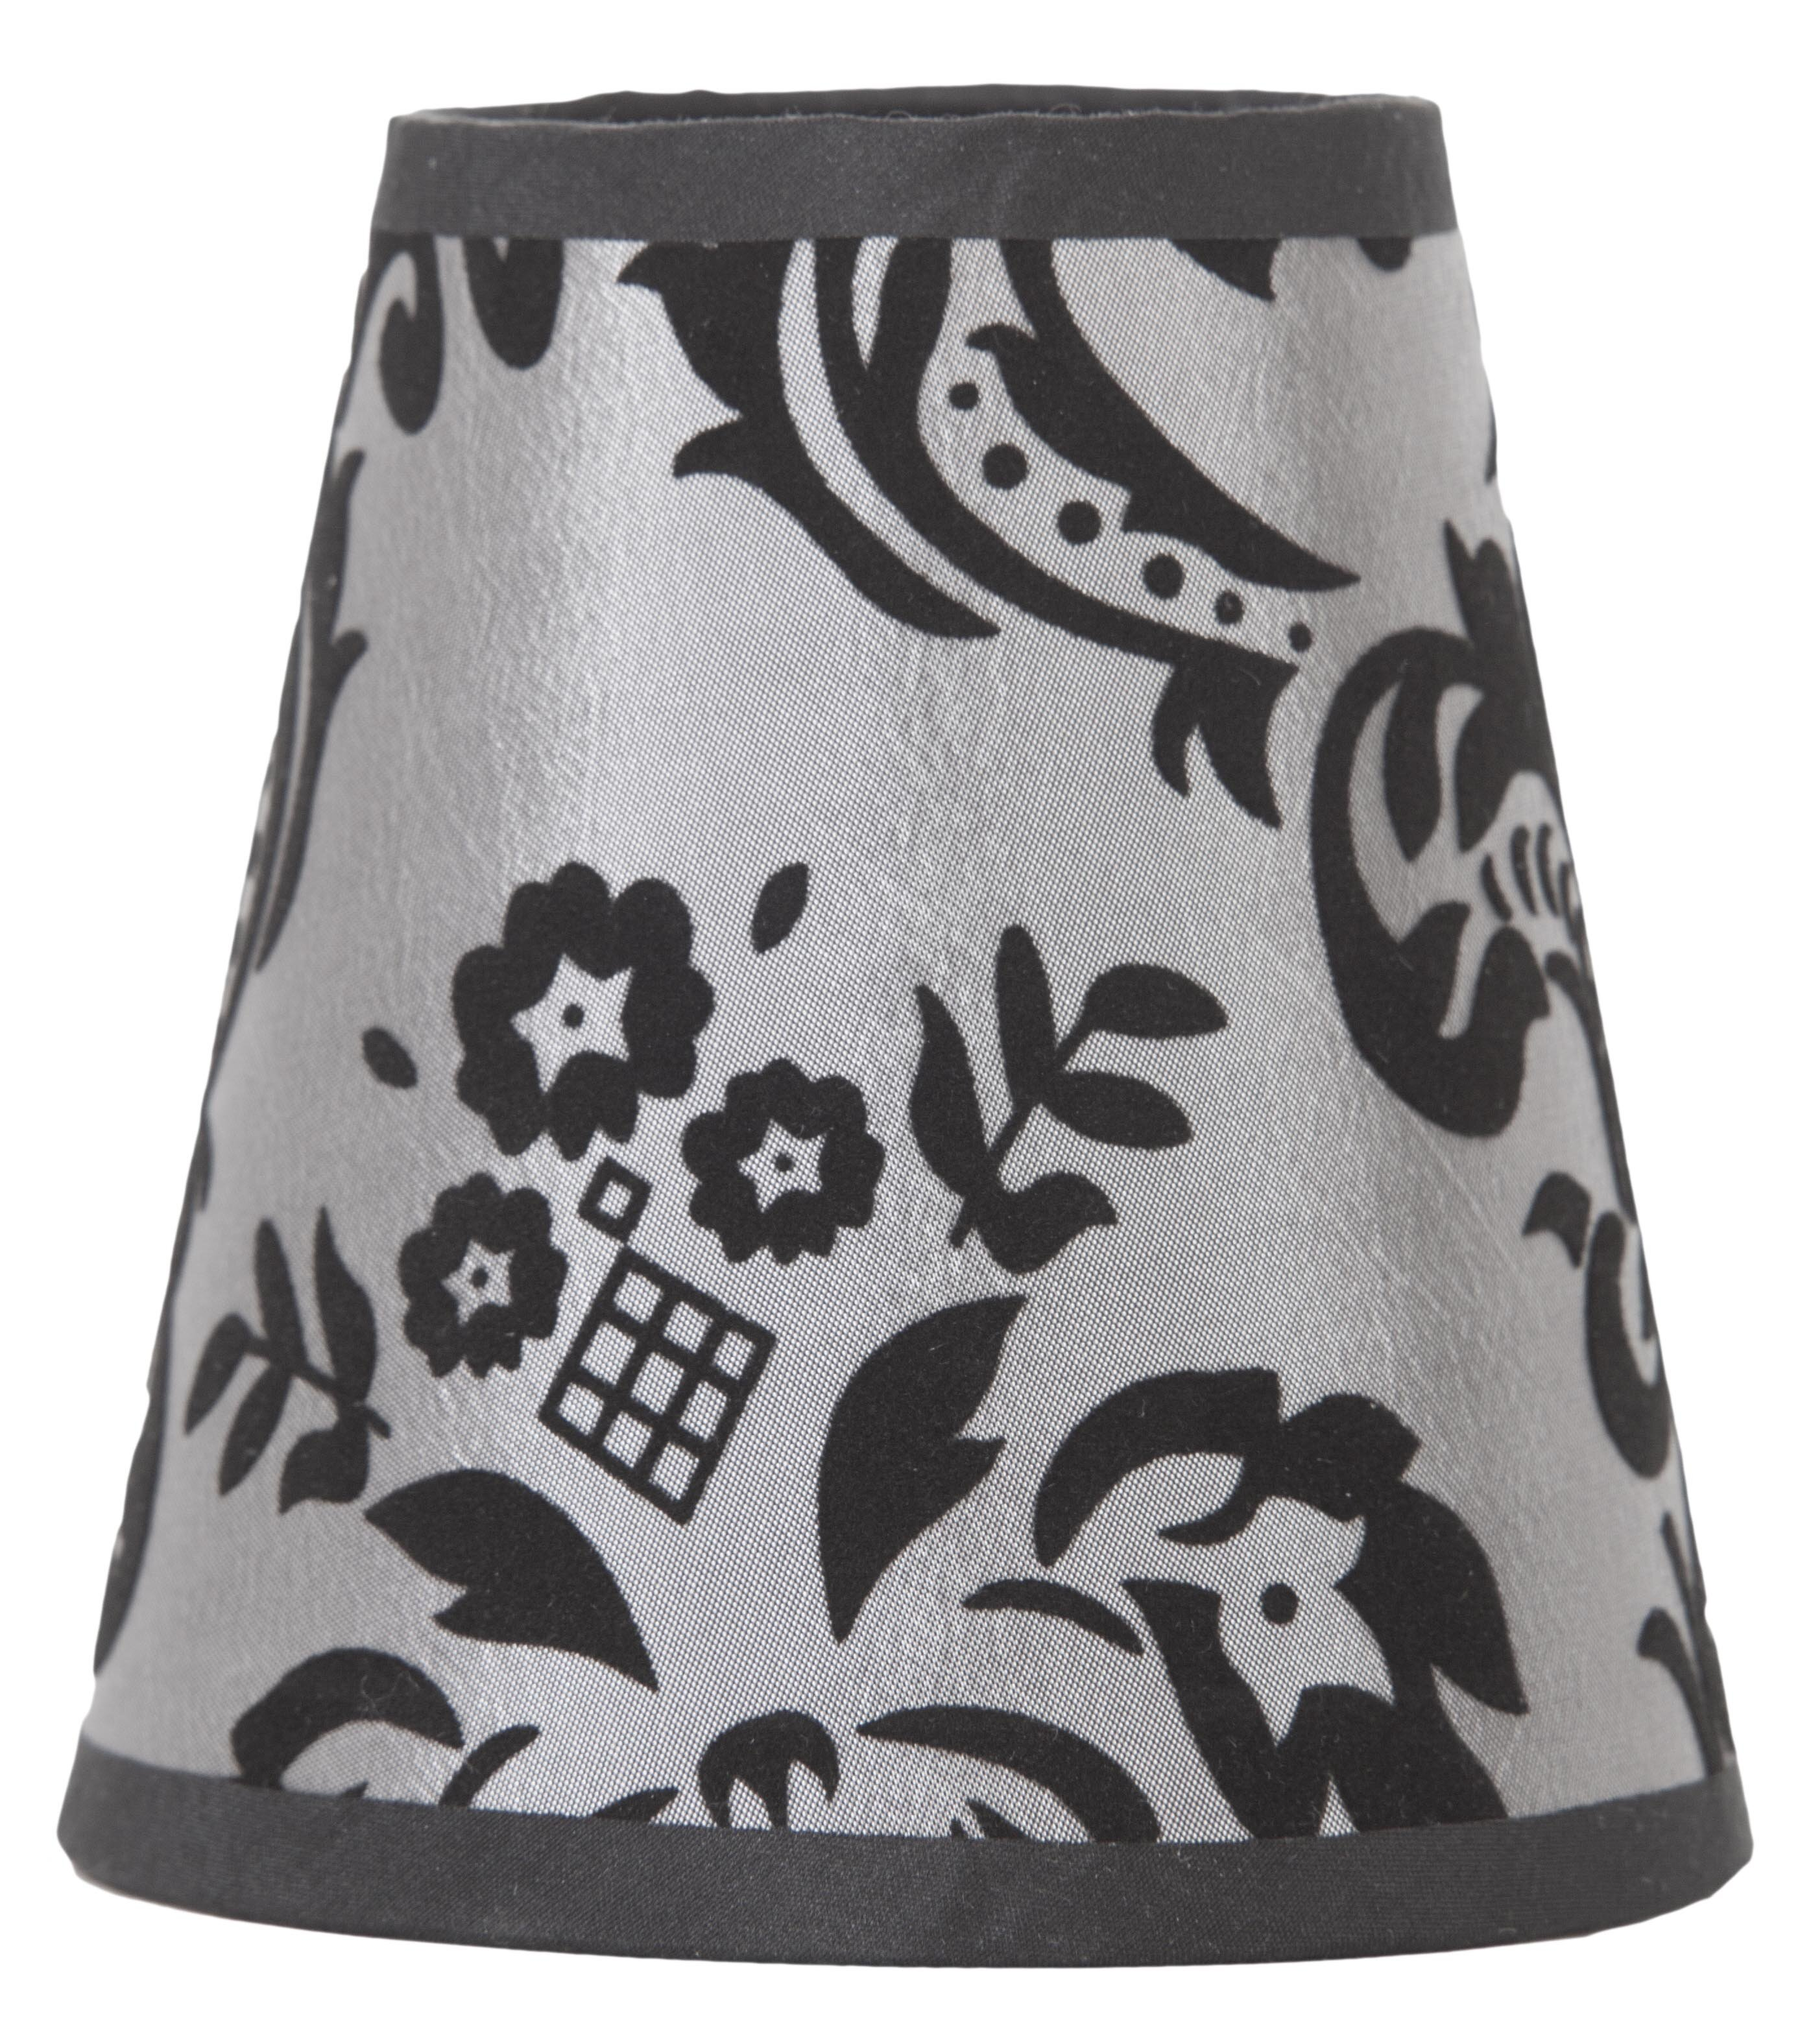 17 Stories Amie 13 2cm Fabric Empire Lamp Shade